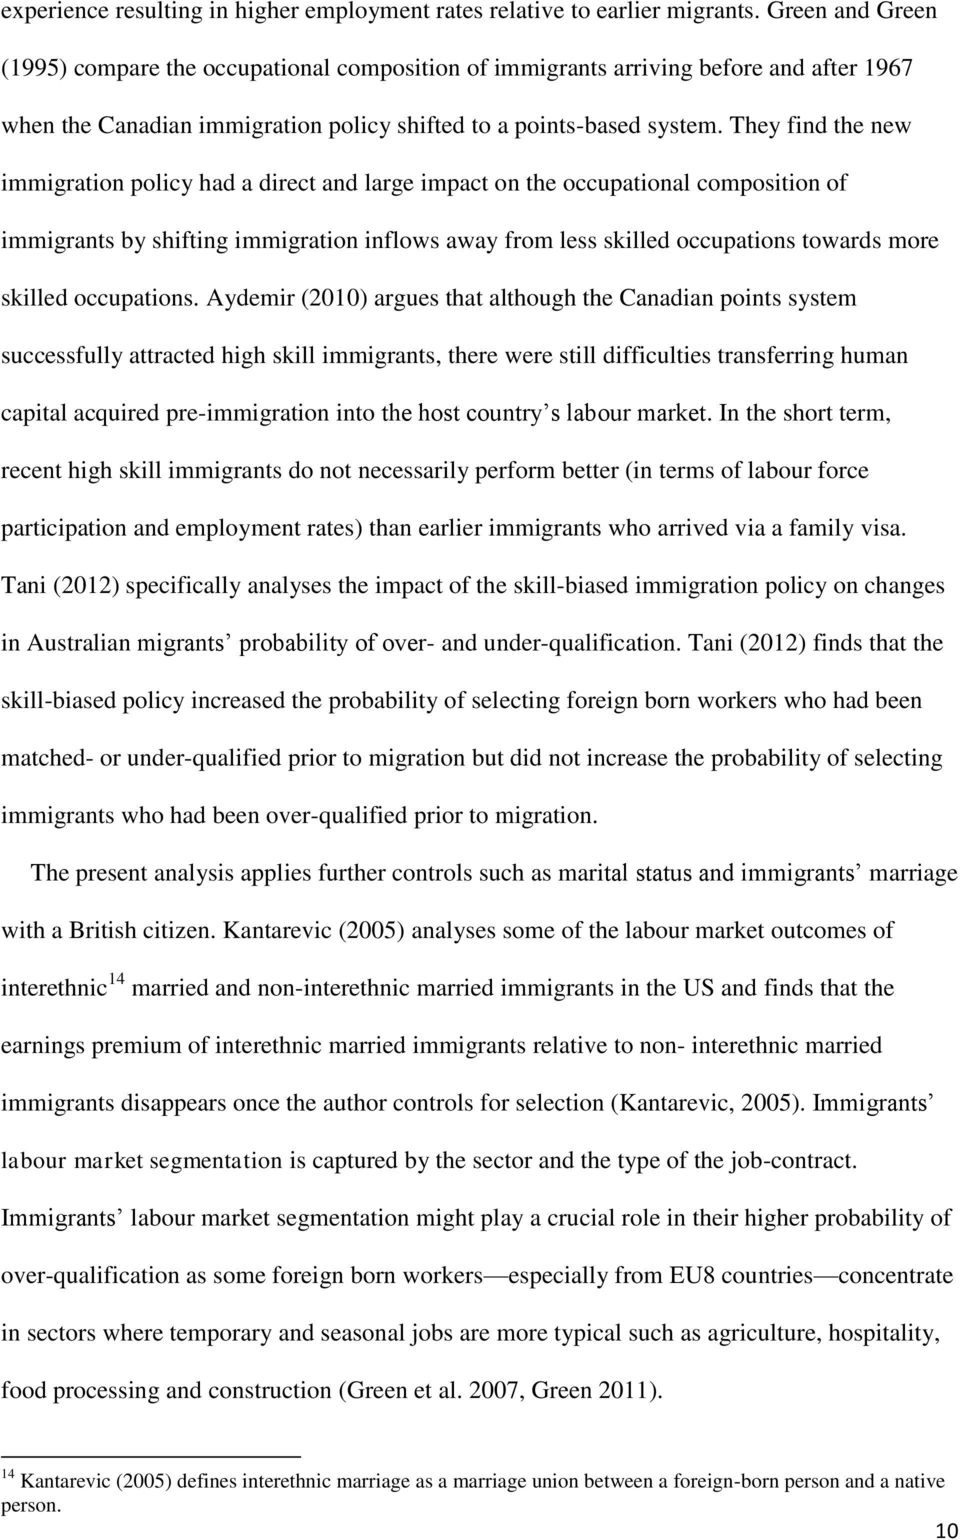 They find the new immigration policy had a direct and large impact on the occupational composition of immigrants by shifting immigration inflows away from less skilled occupations towards more